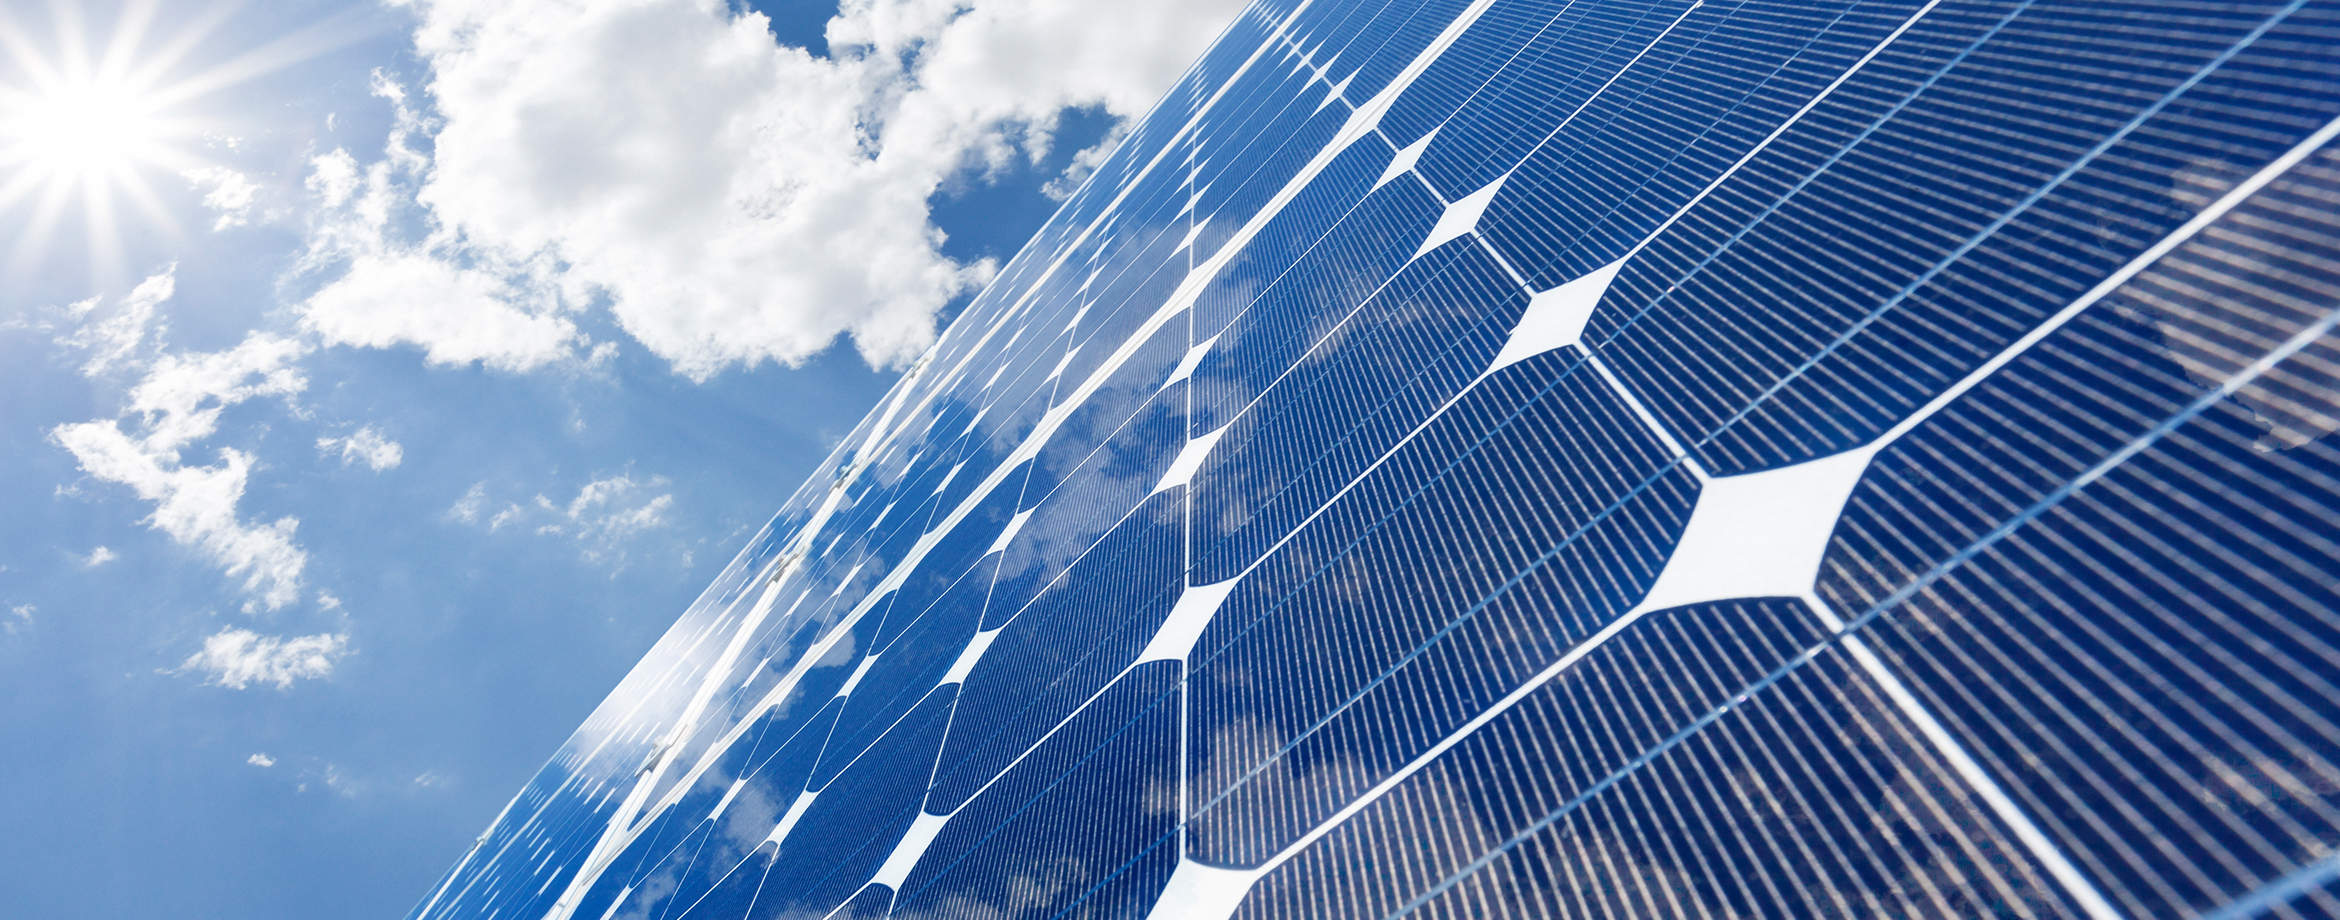 Finding the Optimal Size for a Solar Power System